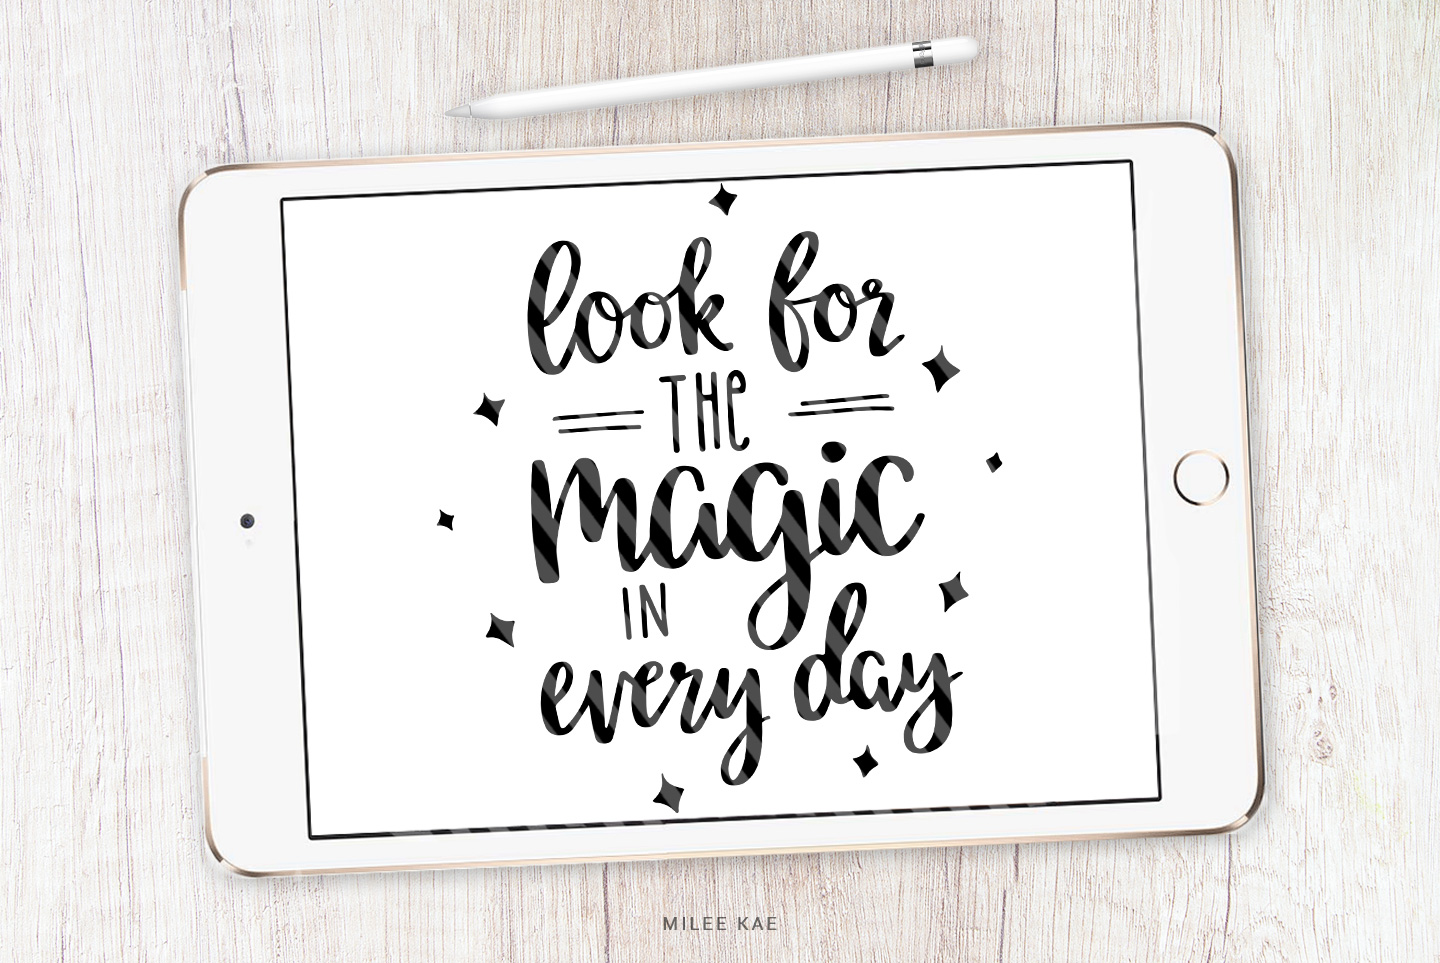 Magic quote SVG, Cutting file, Decal example image 1